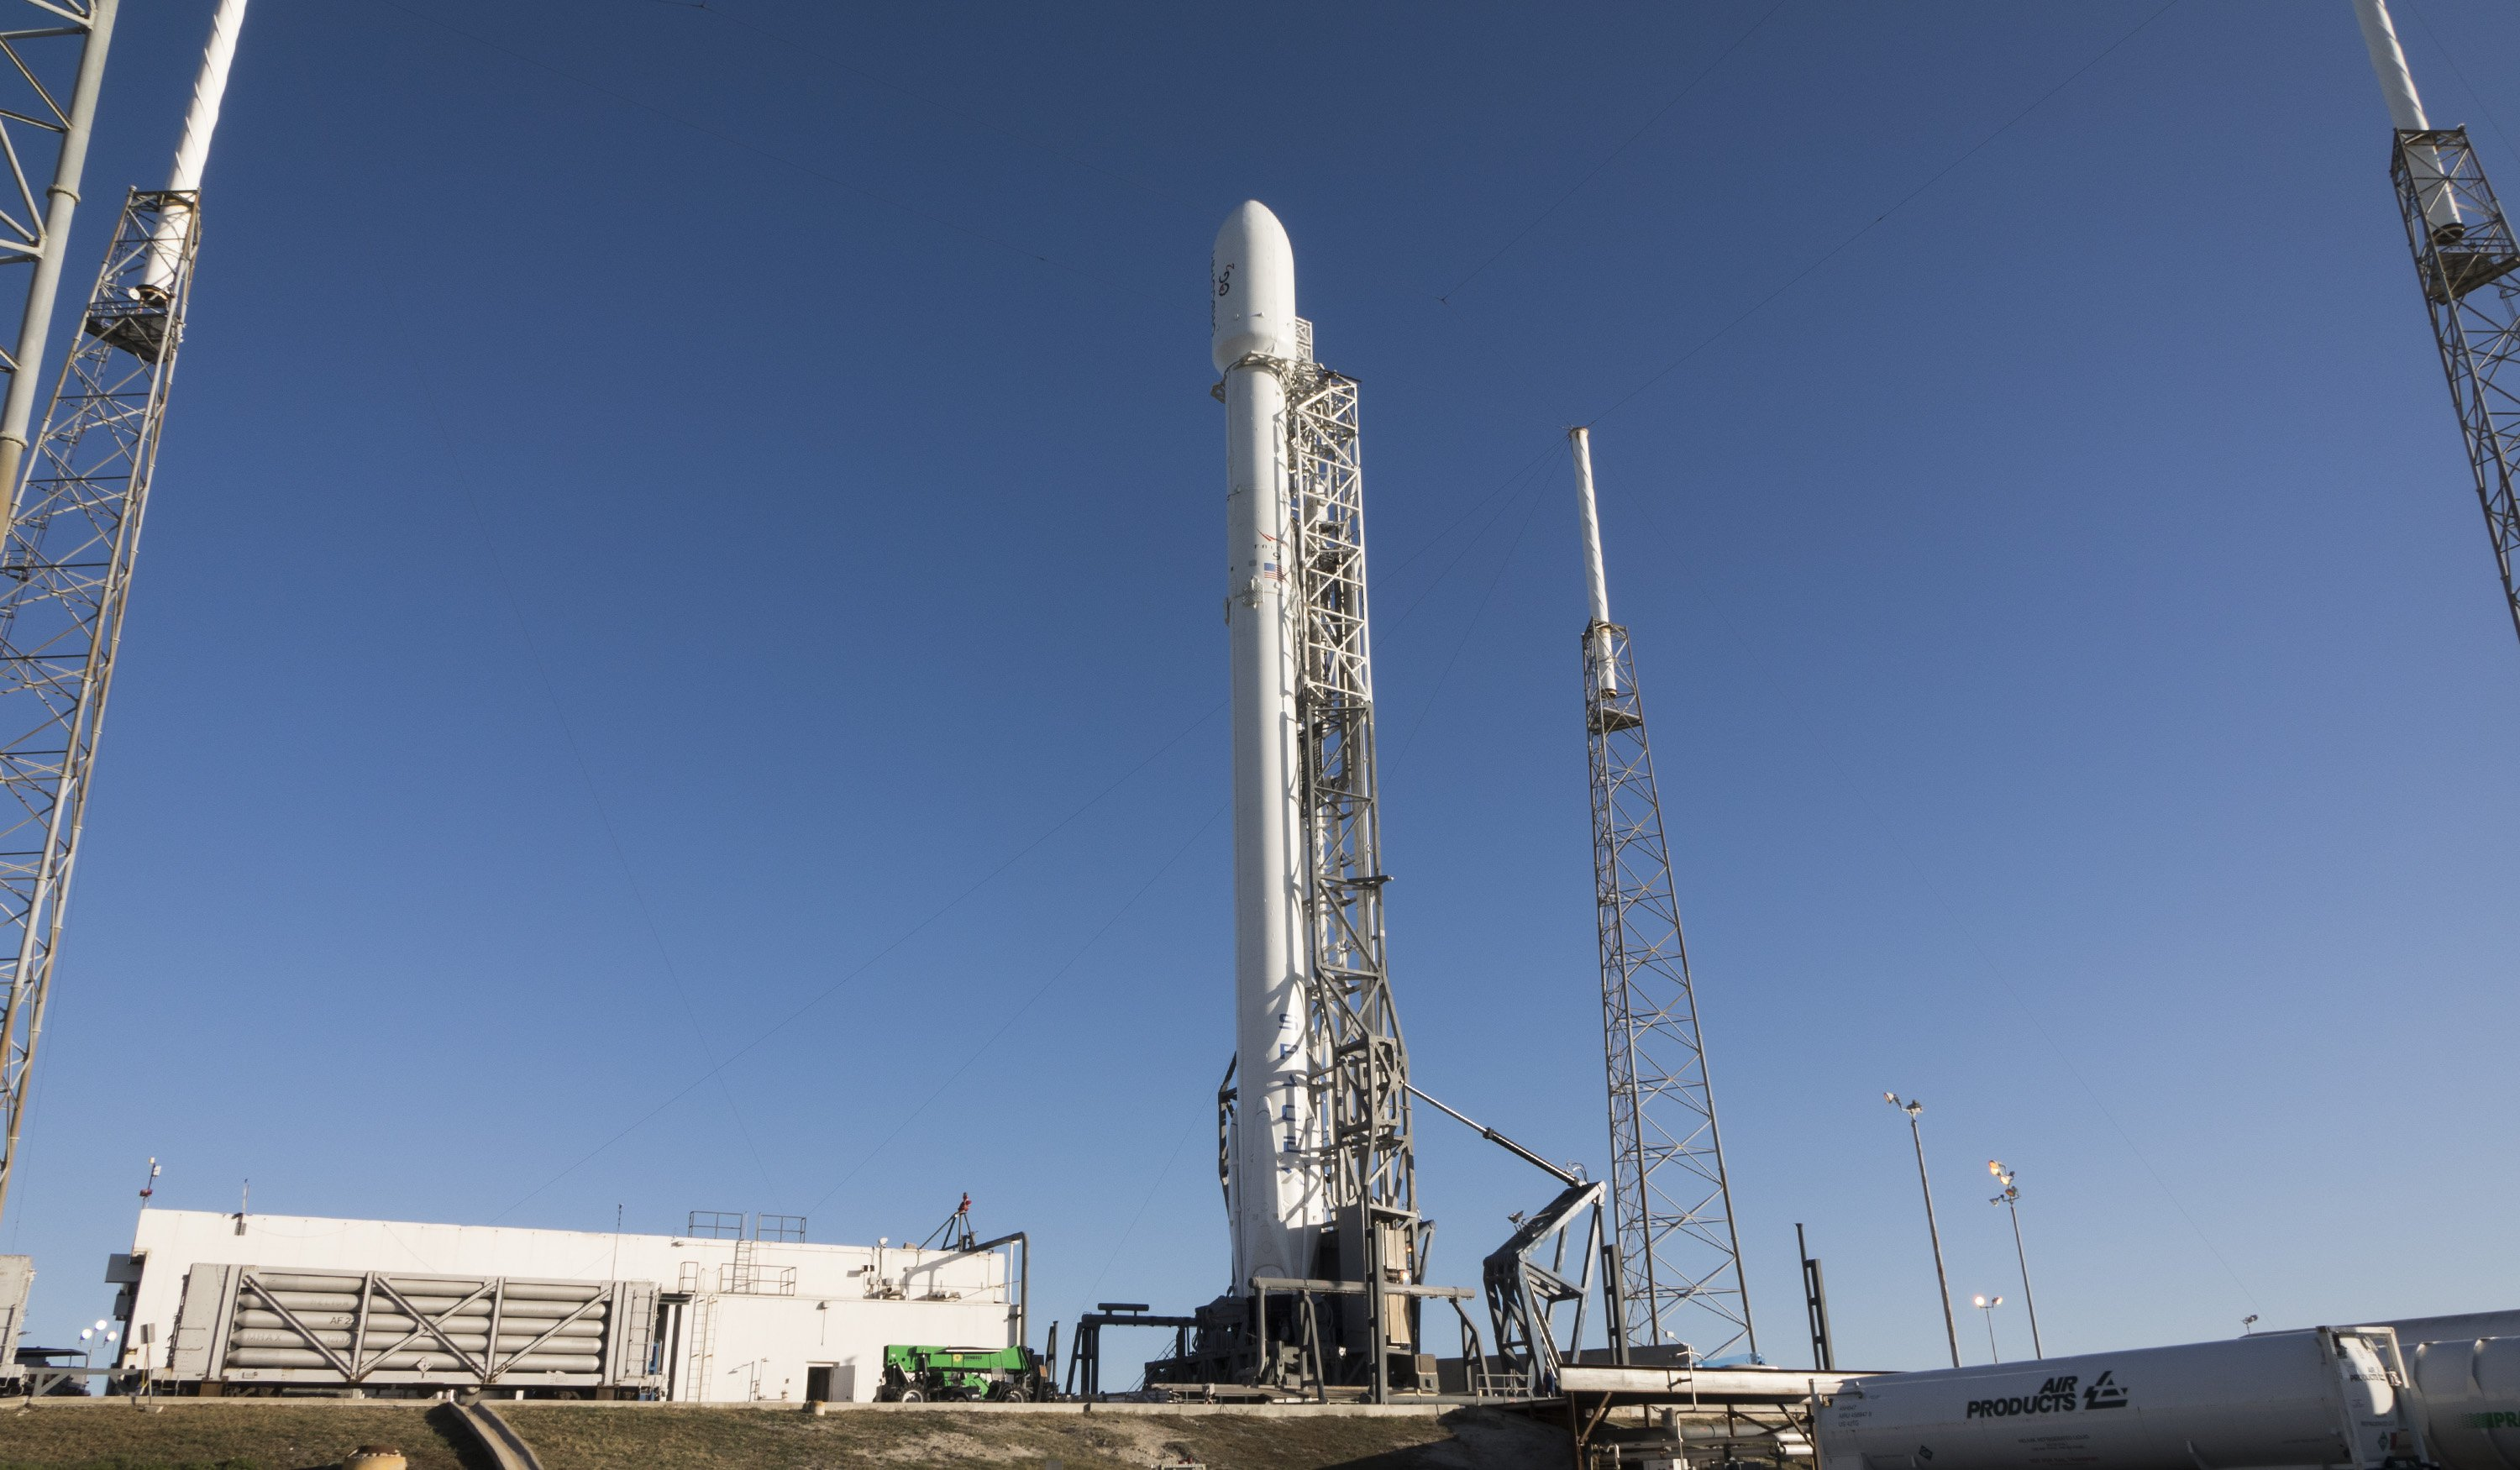 spacex testing schedule - photo #46